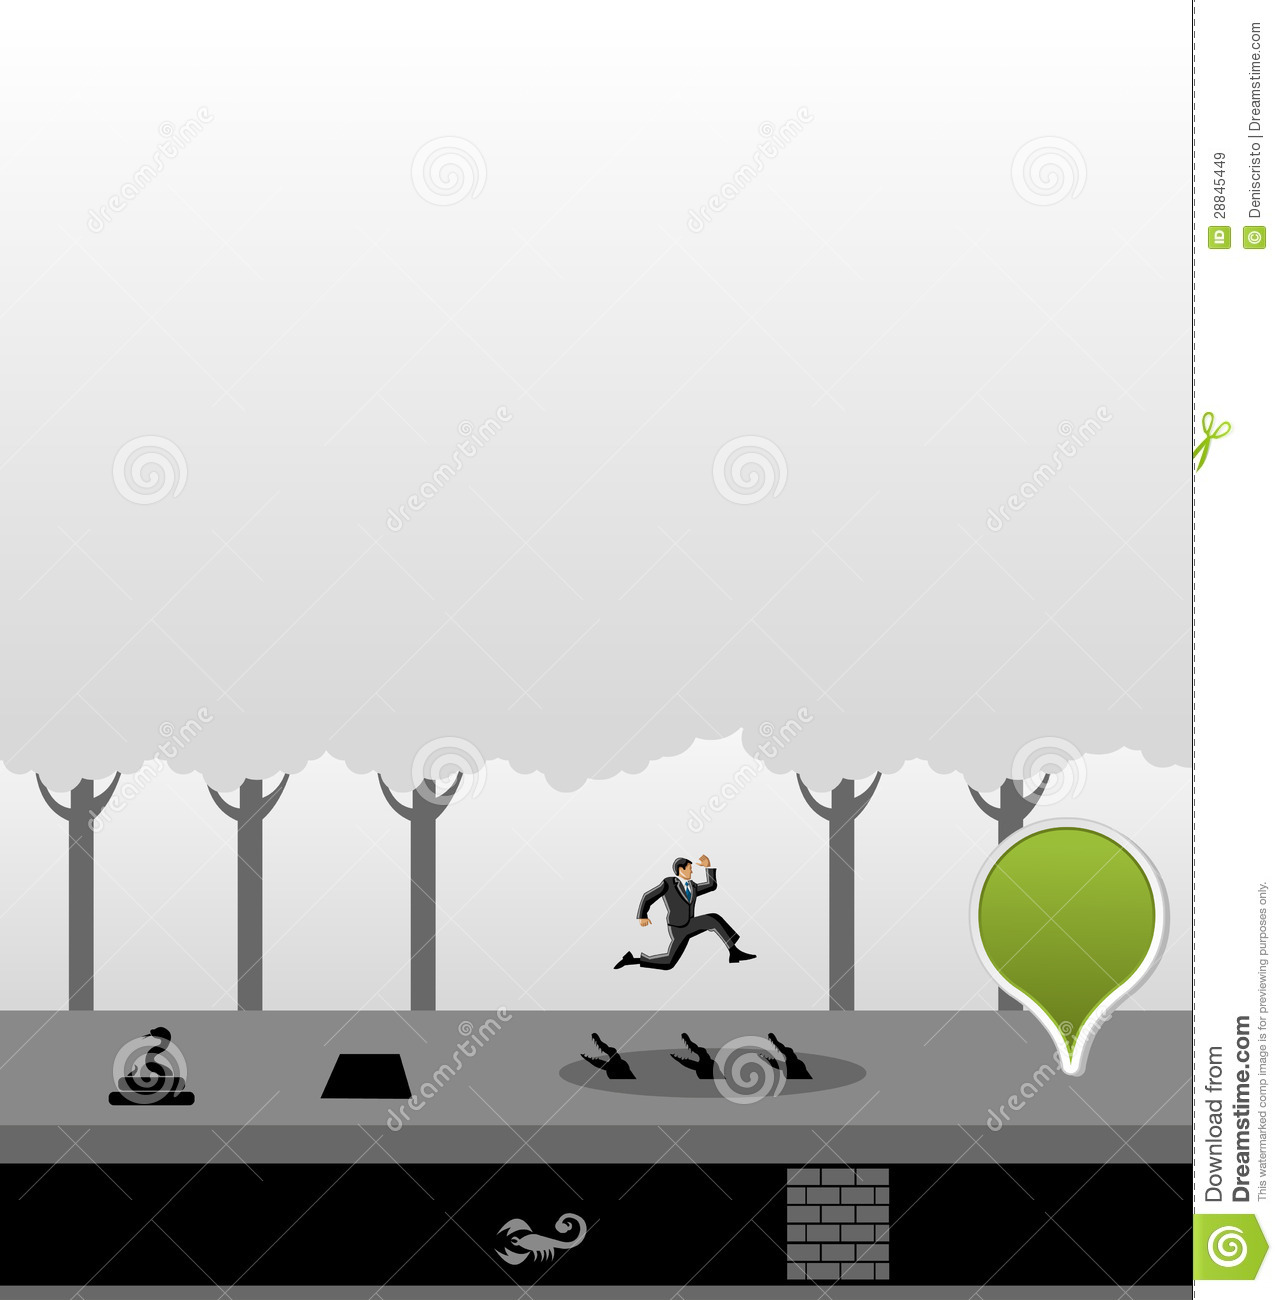 Business man jumping over dangerous obstacles on jungle overcoming